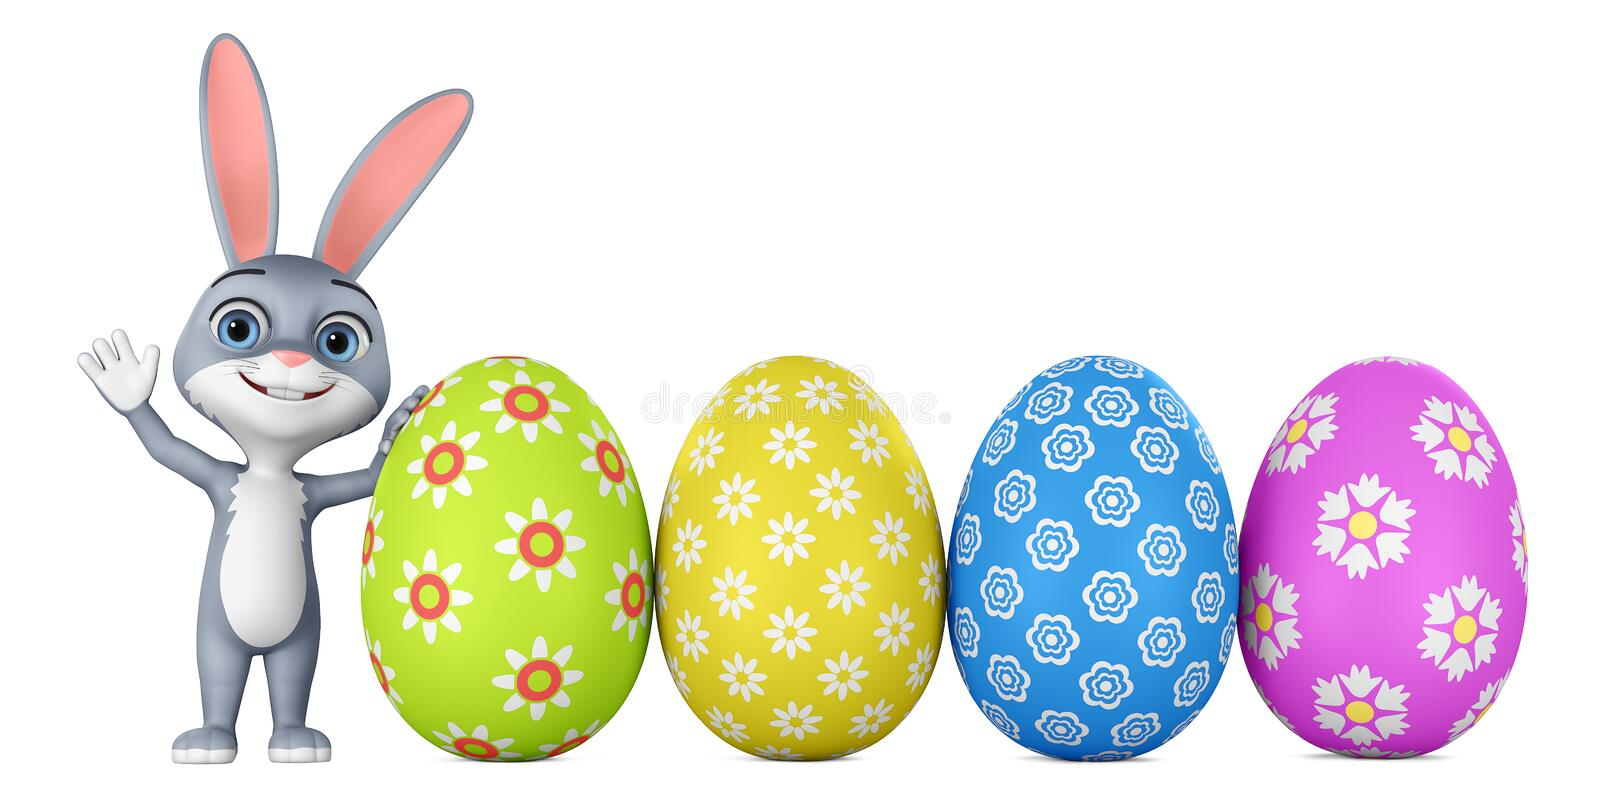 Cartoon character bunny and colorful easter eggs on white background. 3d rendering. Illustration for advertising stock illustration